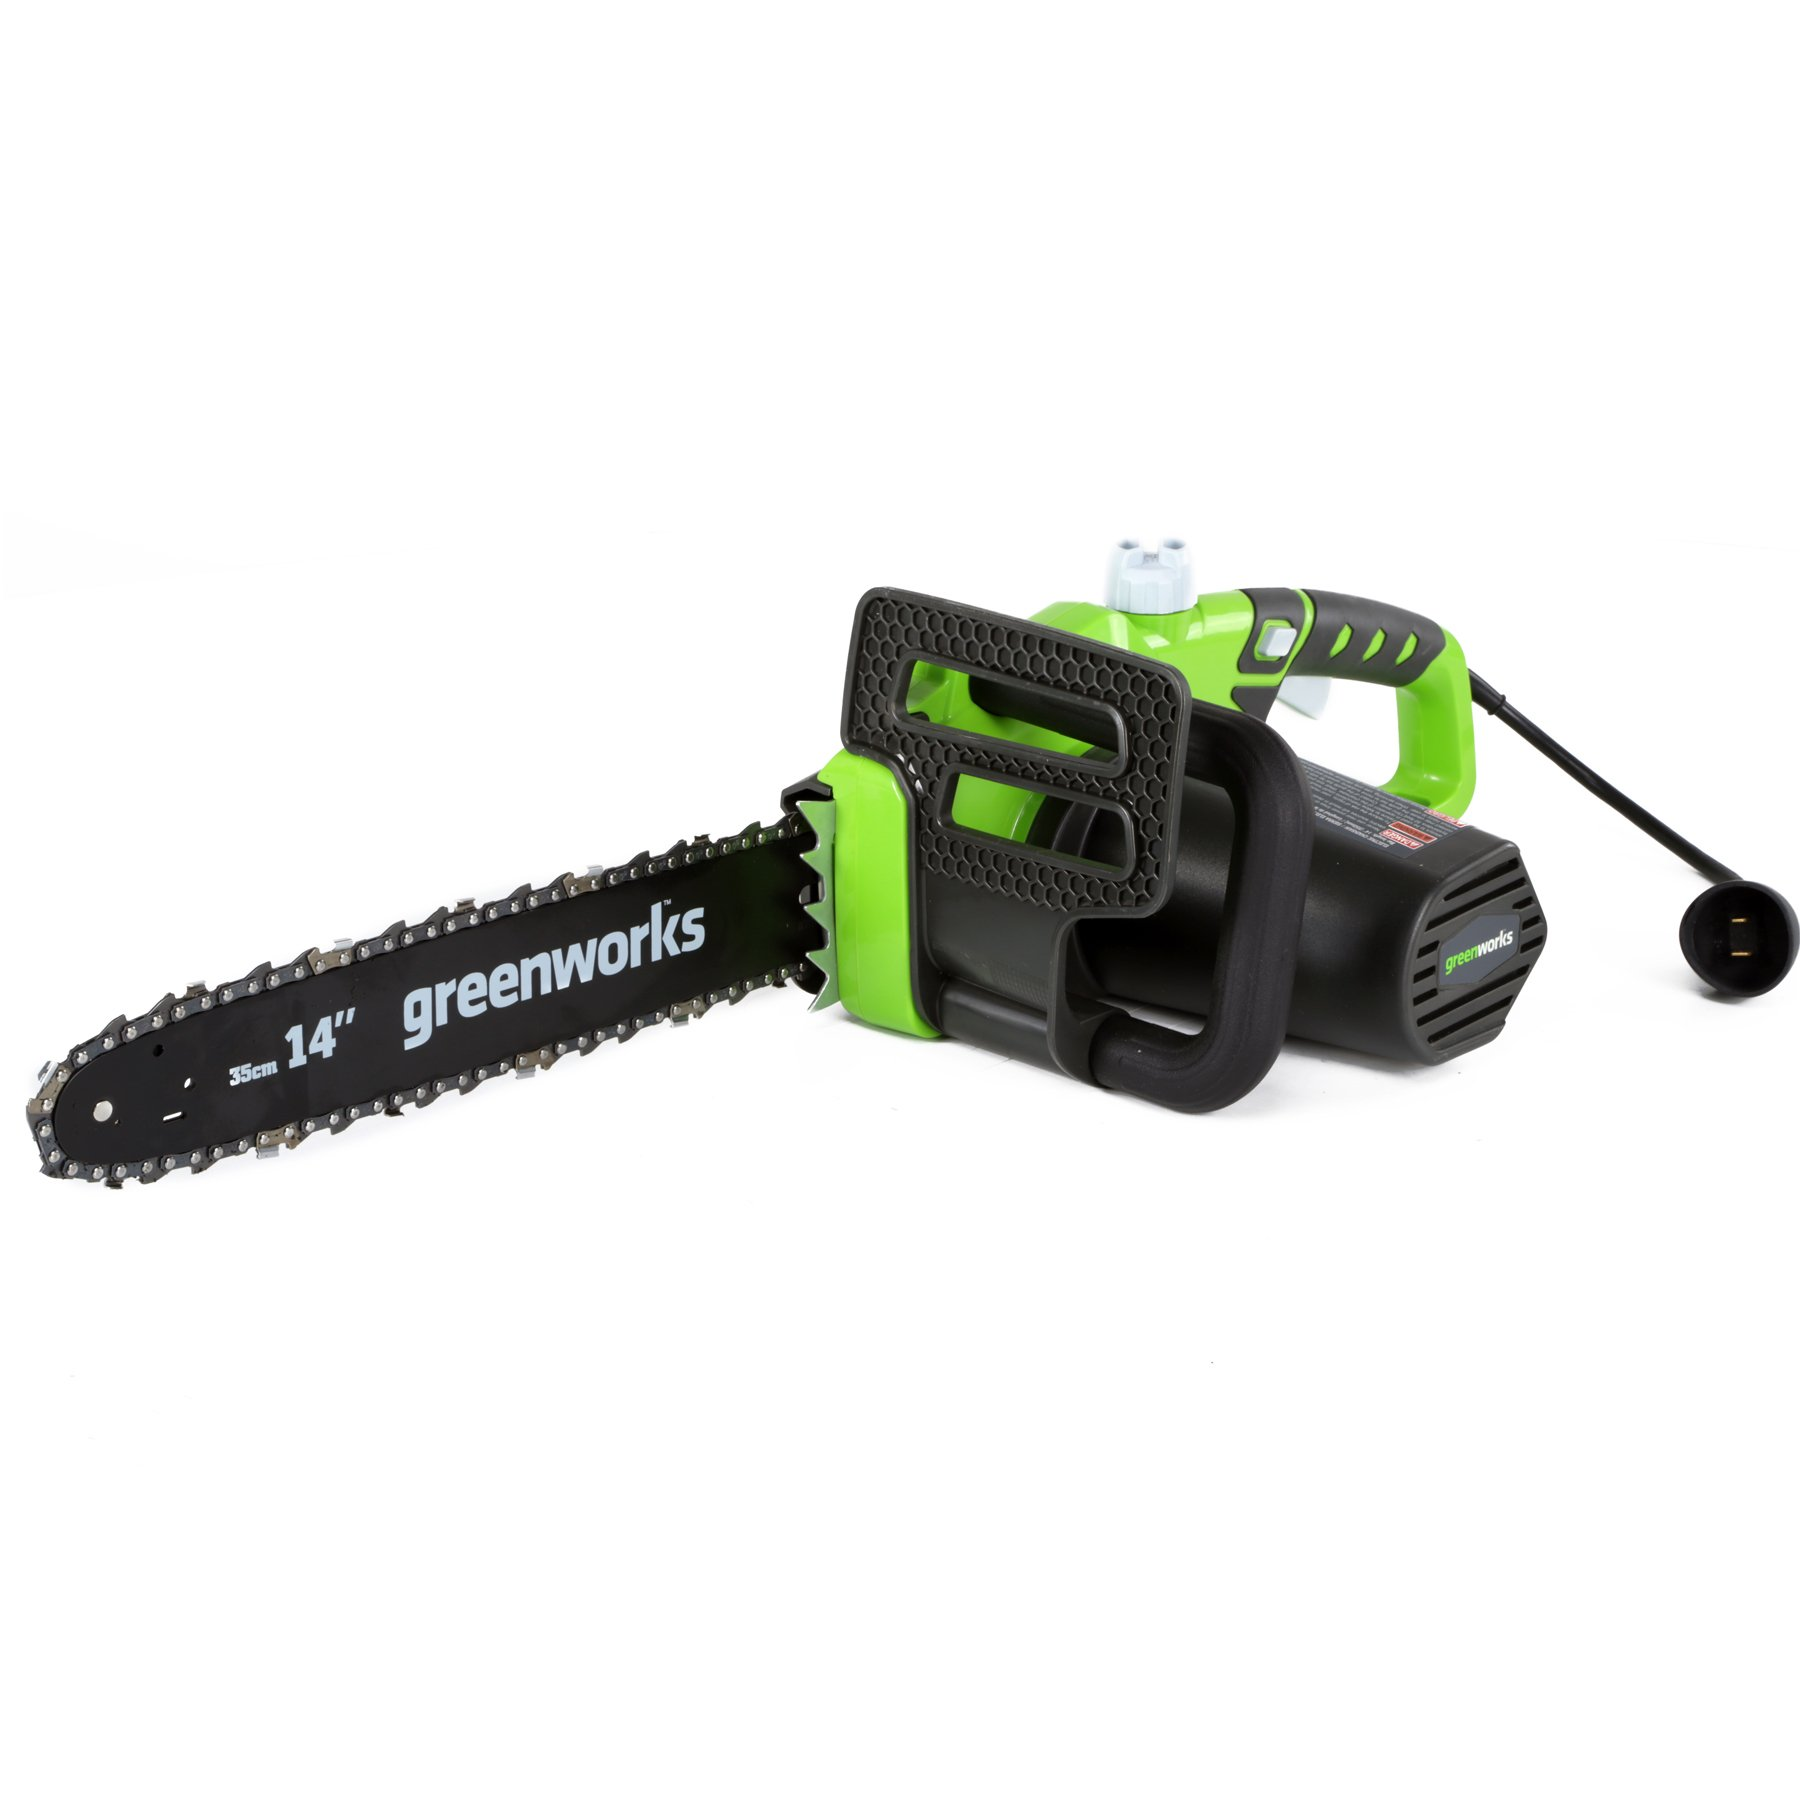 Greenworks 14-Inch 10.5-Amp Corded Electric Chainsaw 20222 by Greenworks